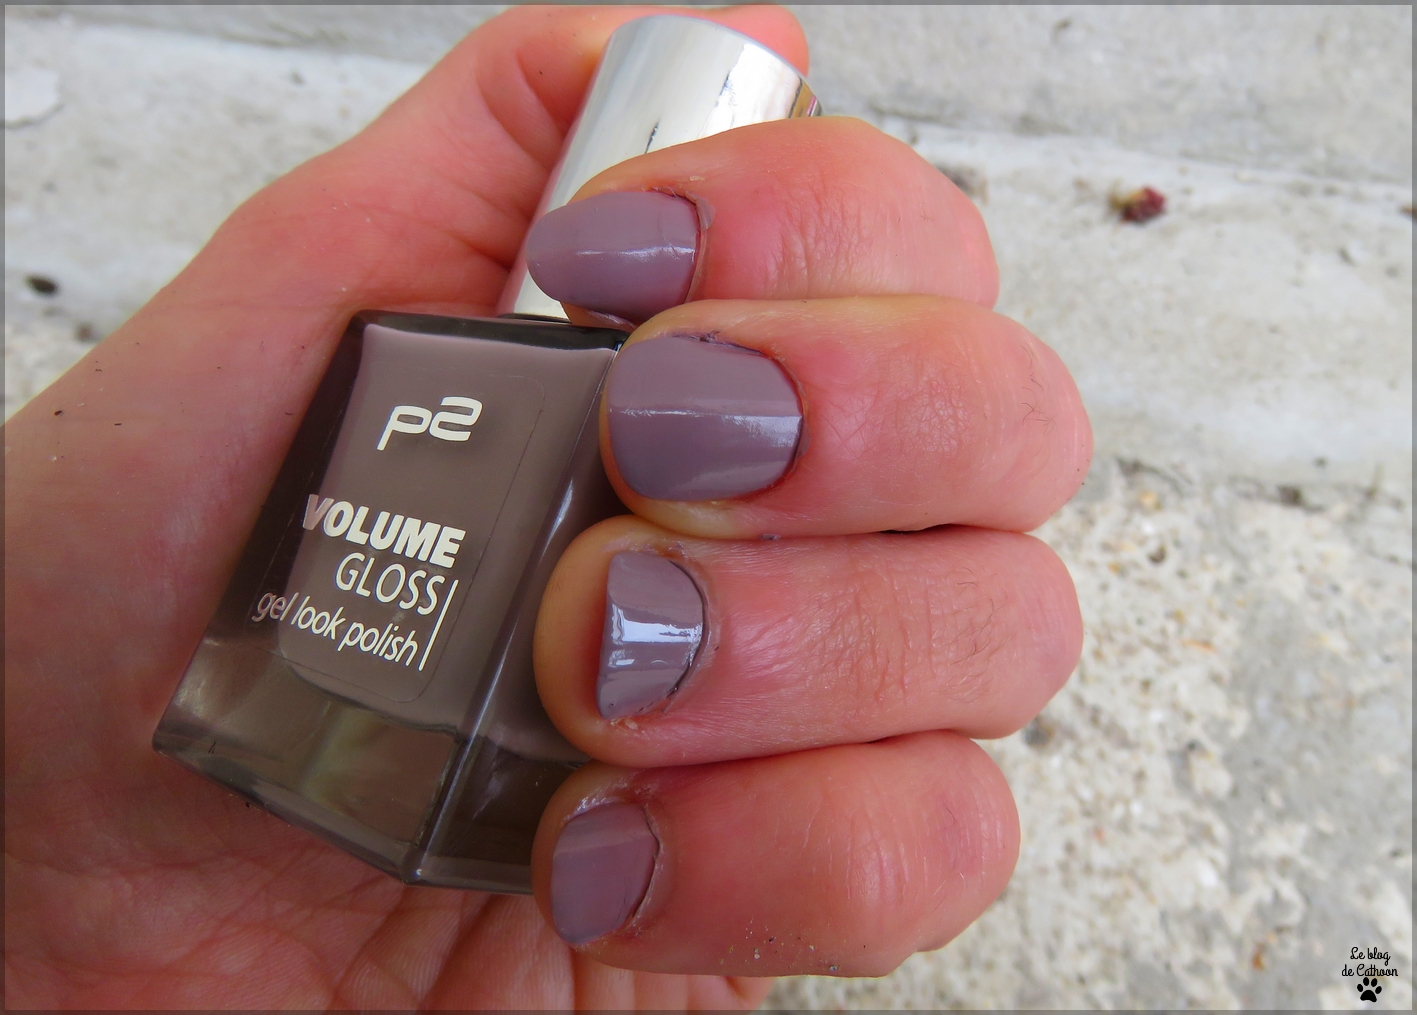 Volume Gloss - 460 Distress Damsel - p2